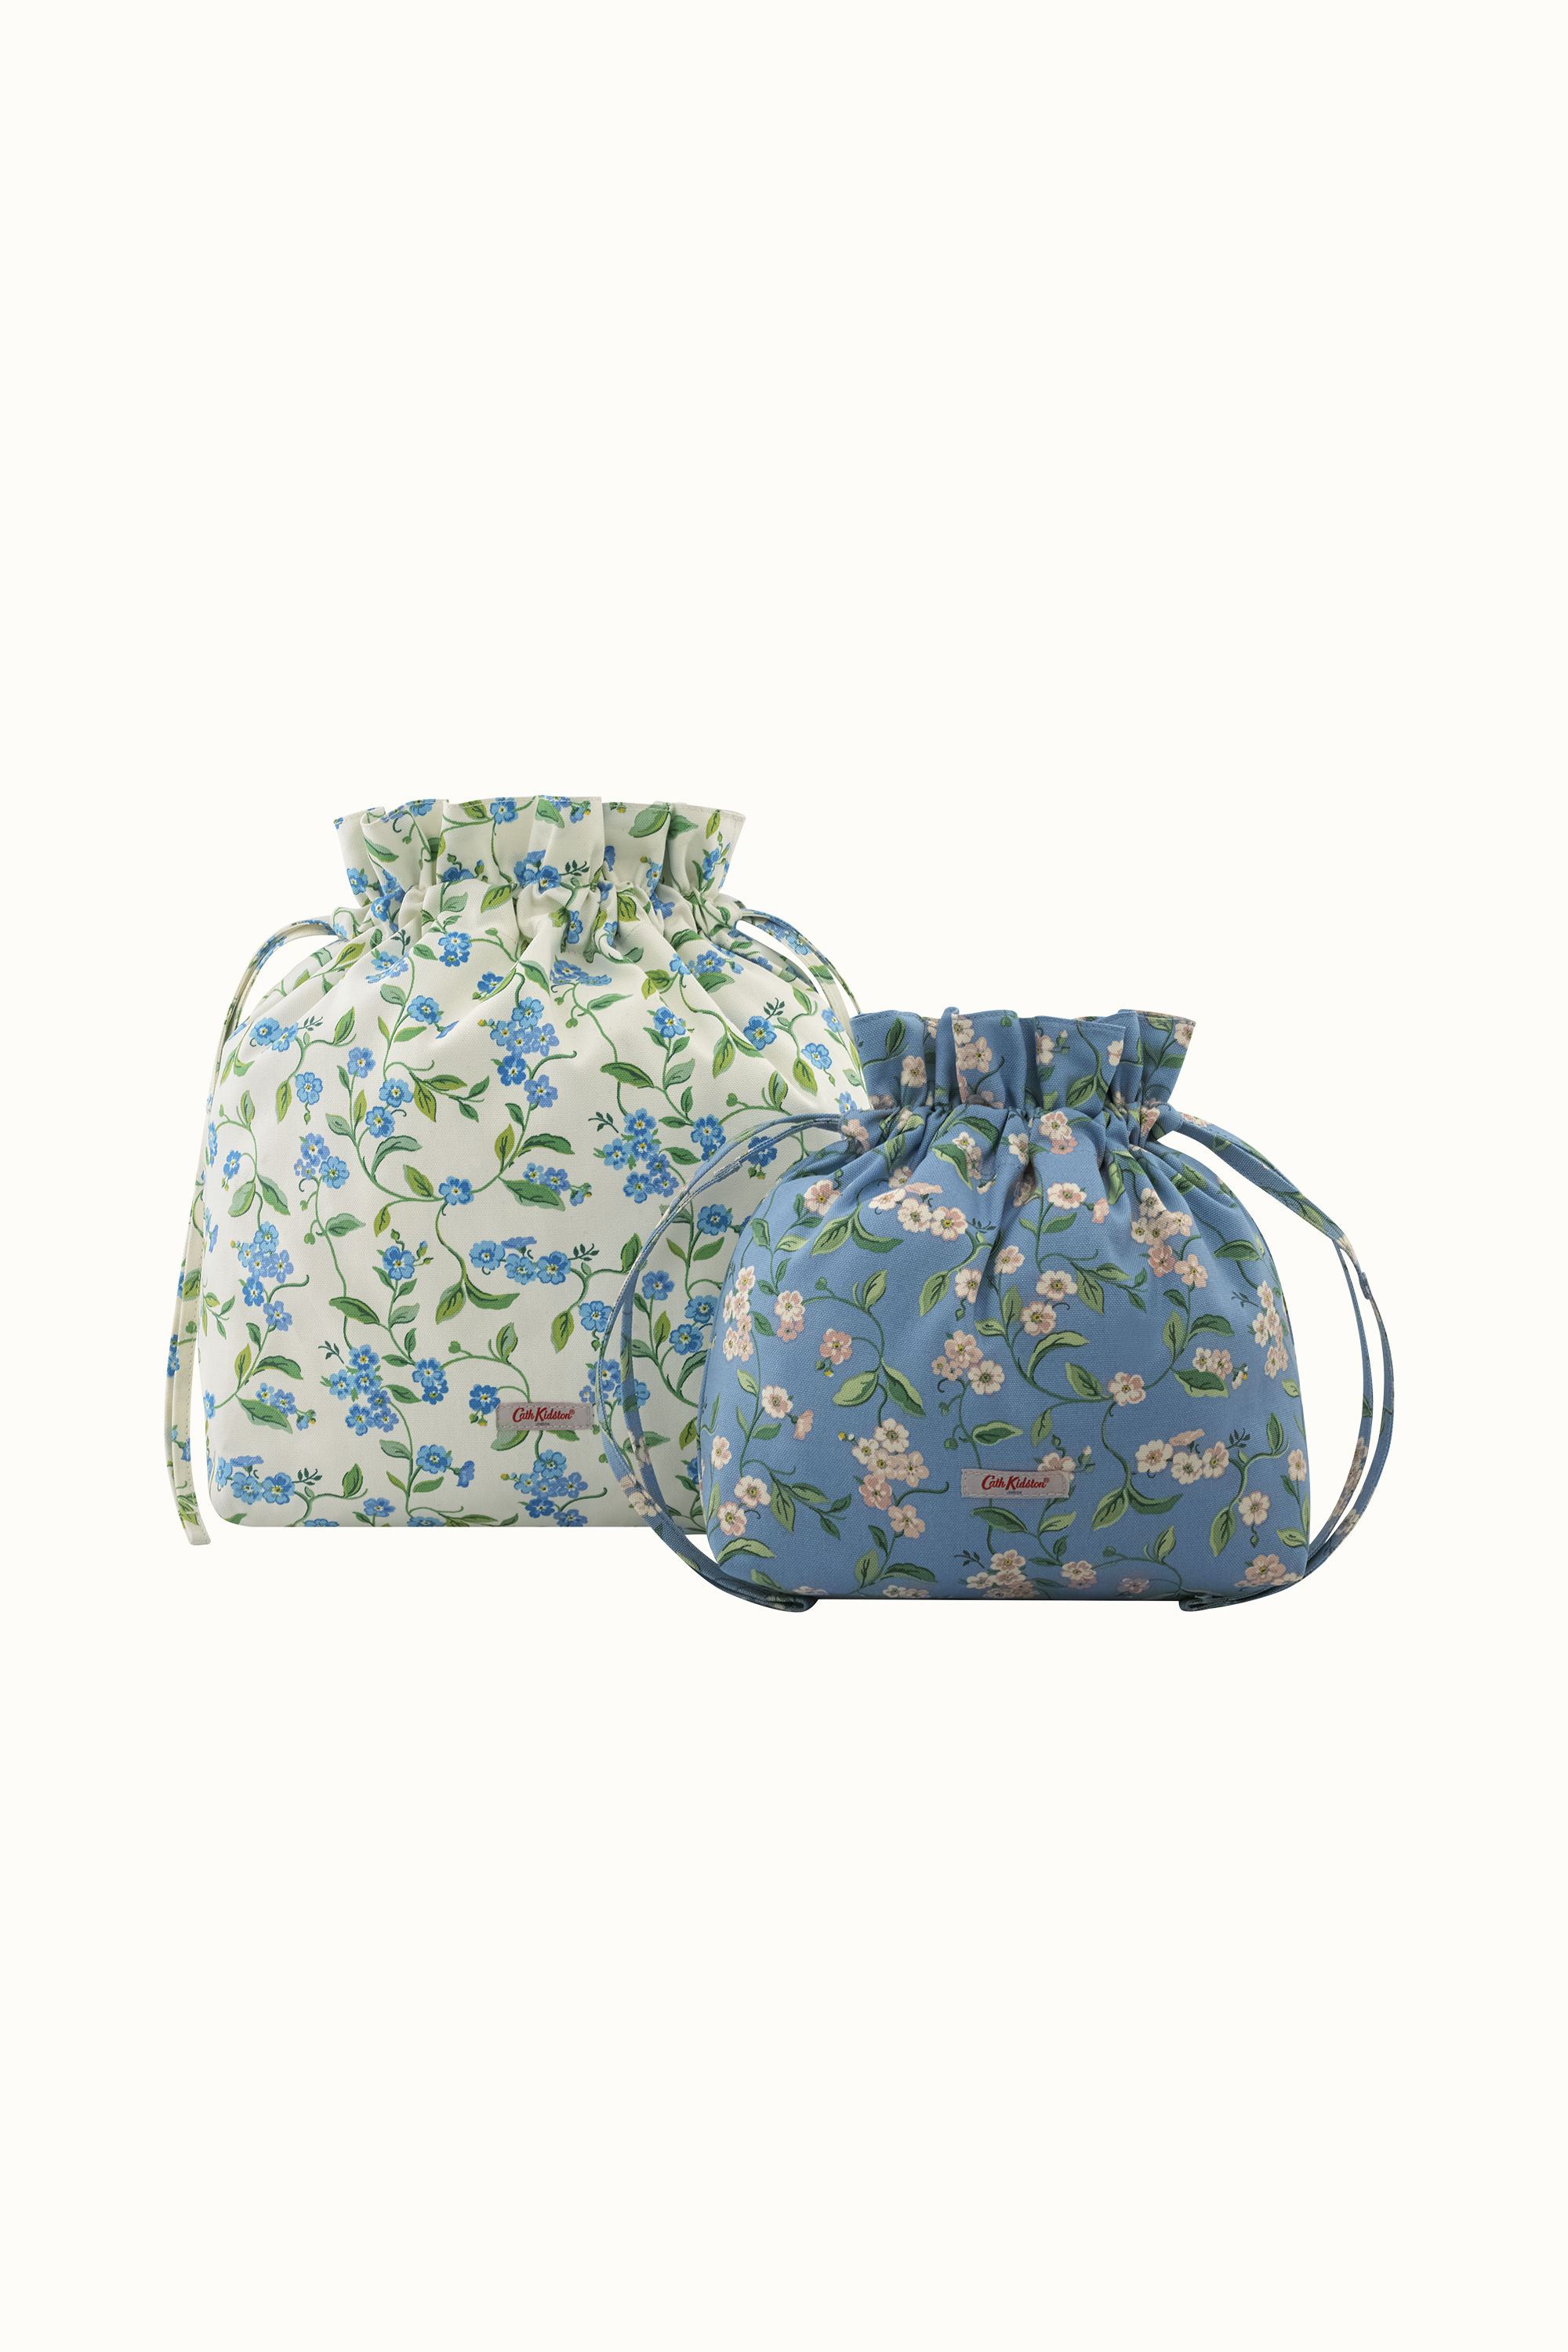 Cath Kidston Forget Me Not Little Hitch Pouches in Cream